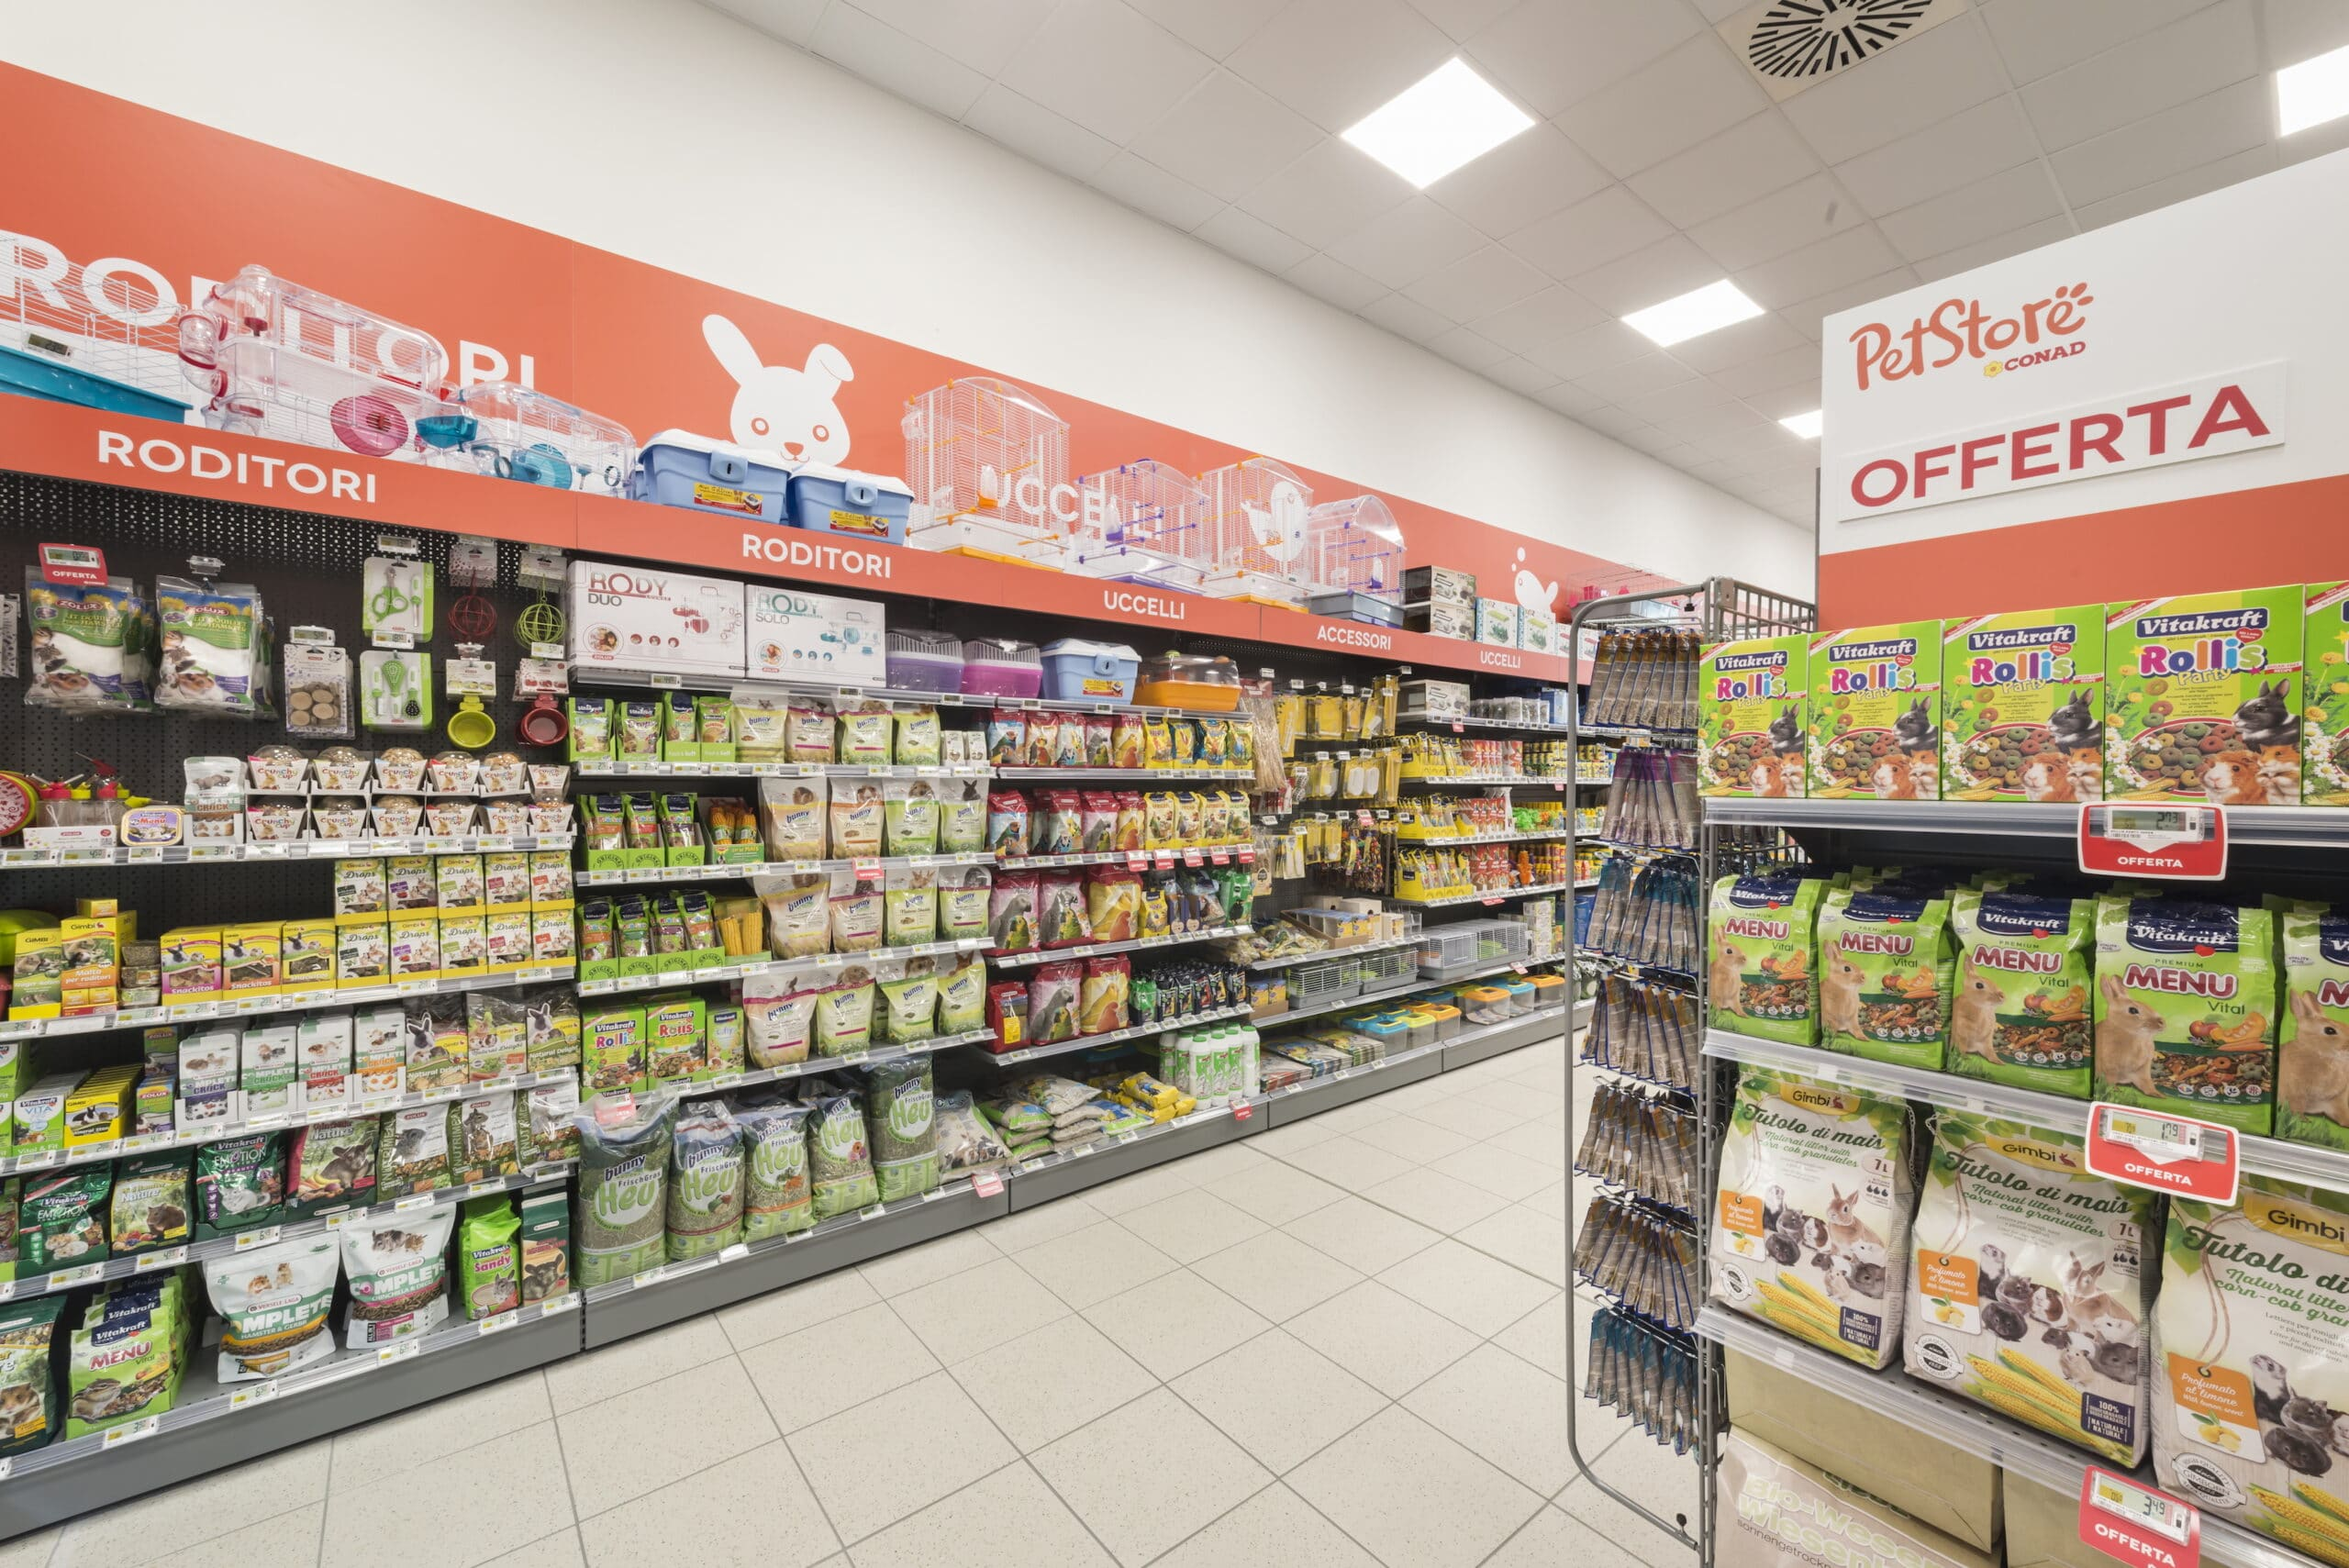 Pet supermarket coupons in store